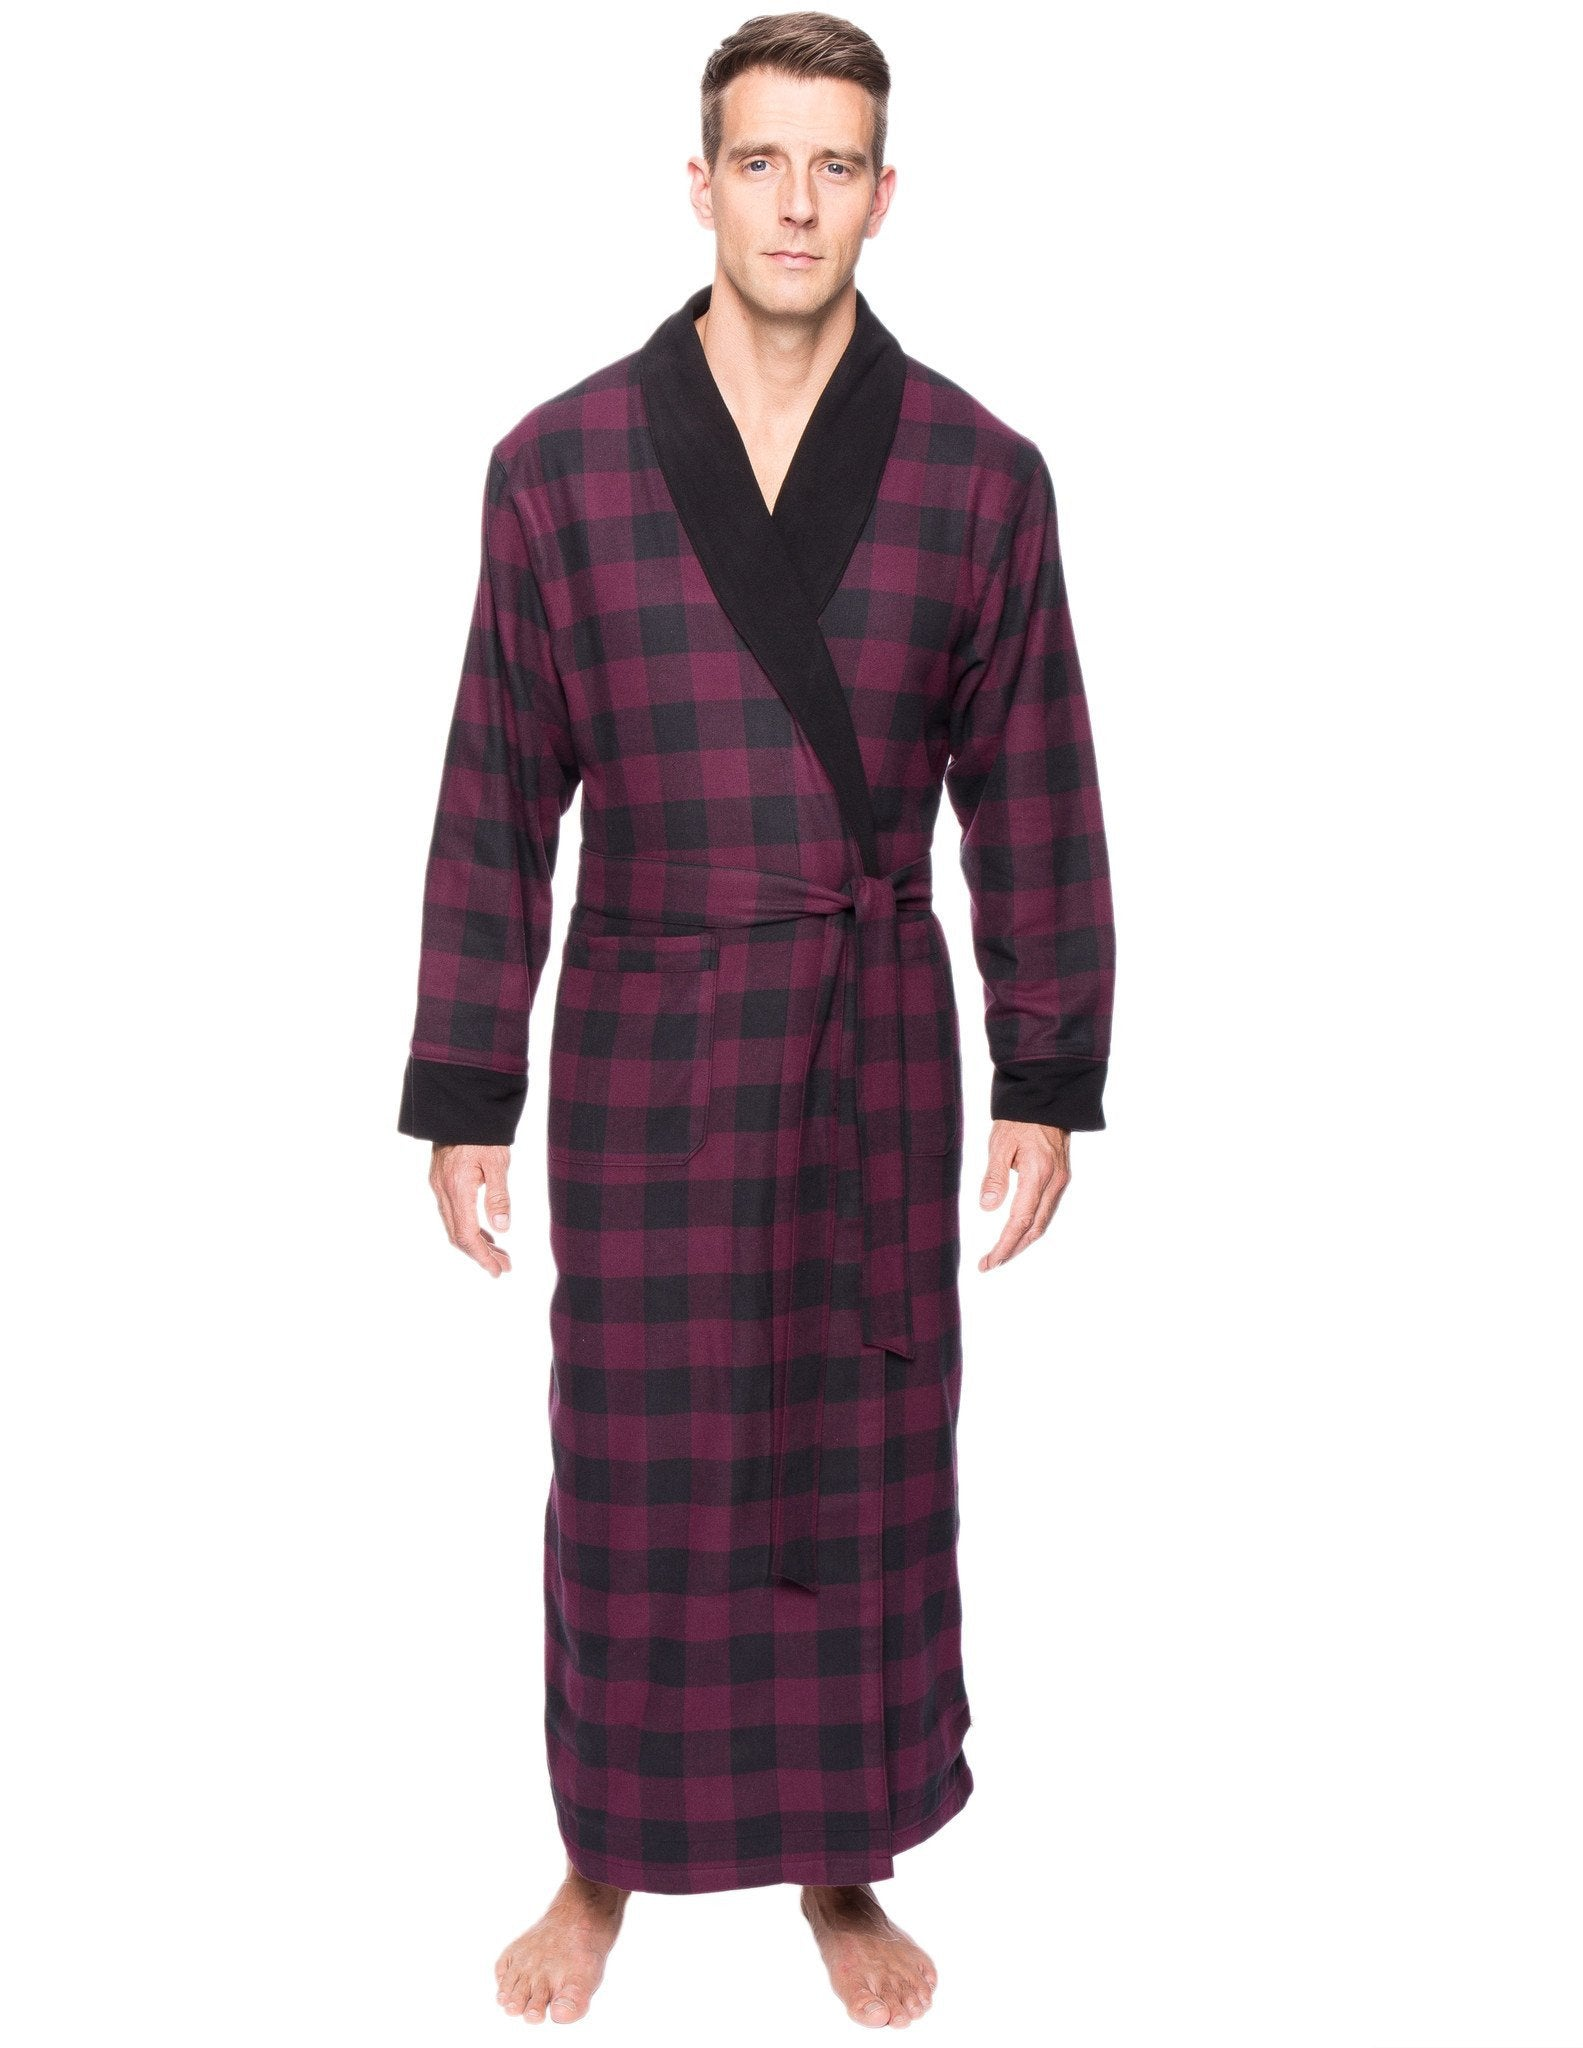 Men's Premium 100% Cotton Flannel Fleece Lined Robe - Gingham Fig/Black